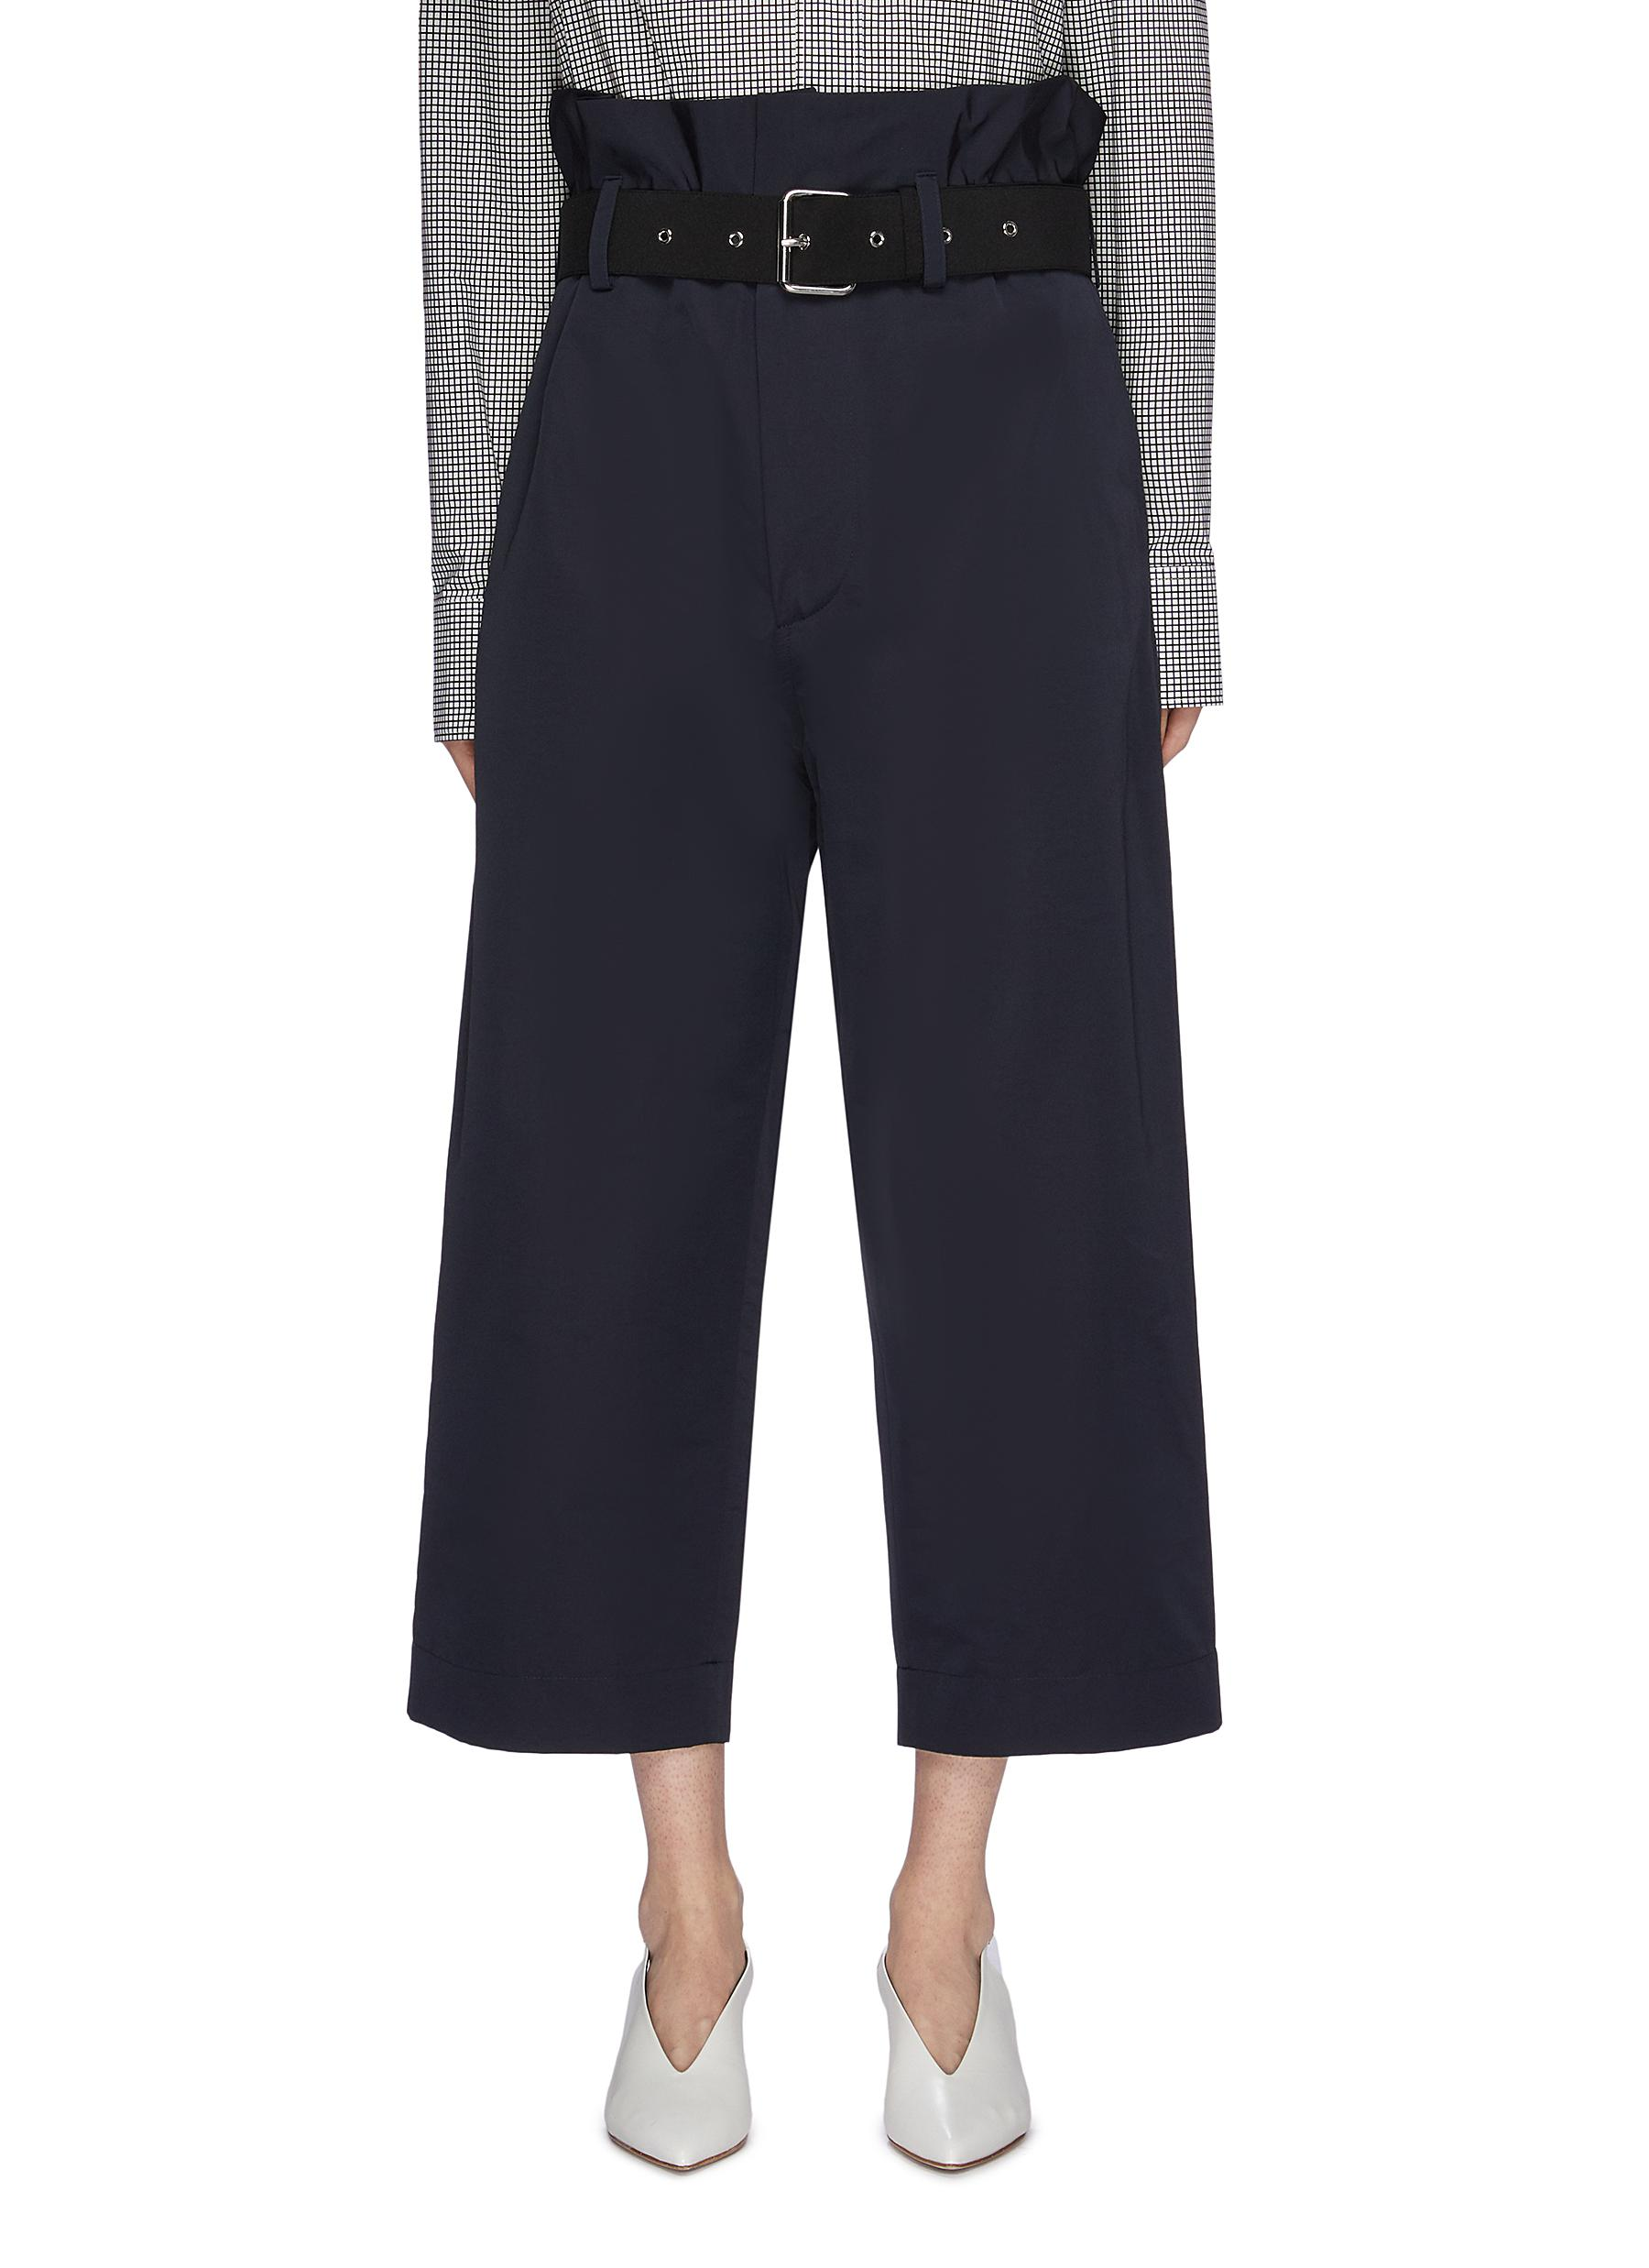 Belted paperbag pants by Plan C